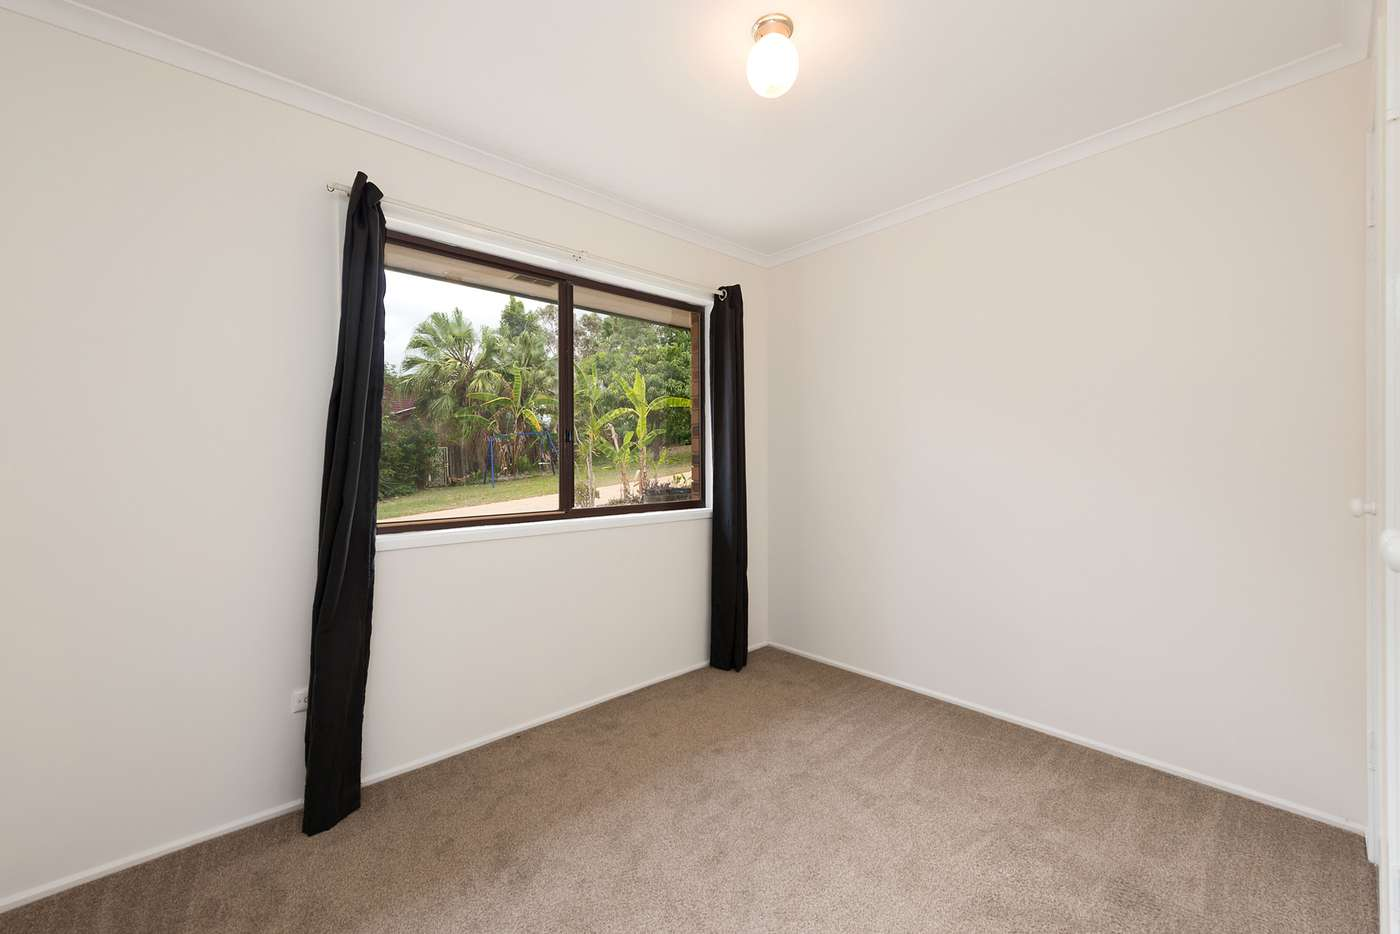 Sixth view of Homely house listing, 14 Marlock Street, Bellbowrie QLD 4070